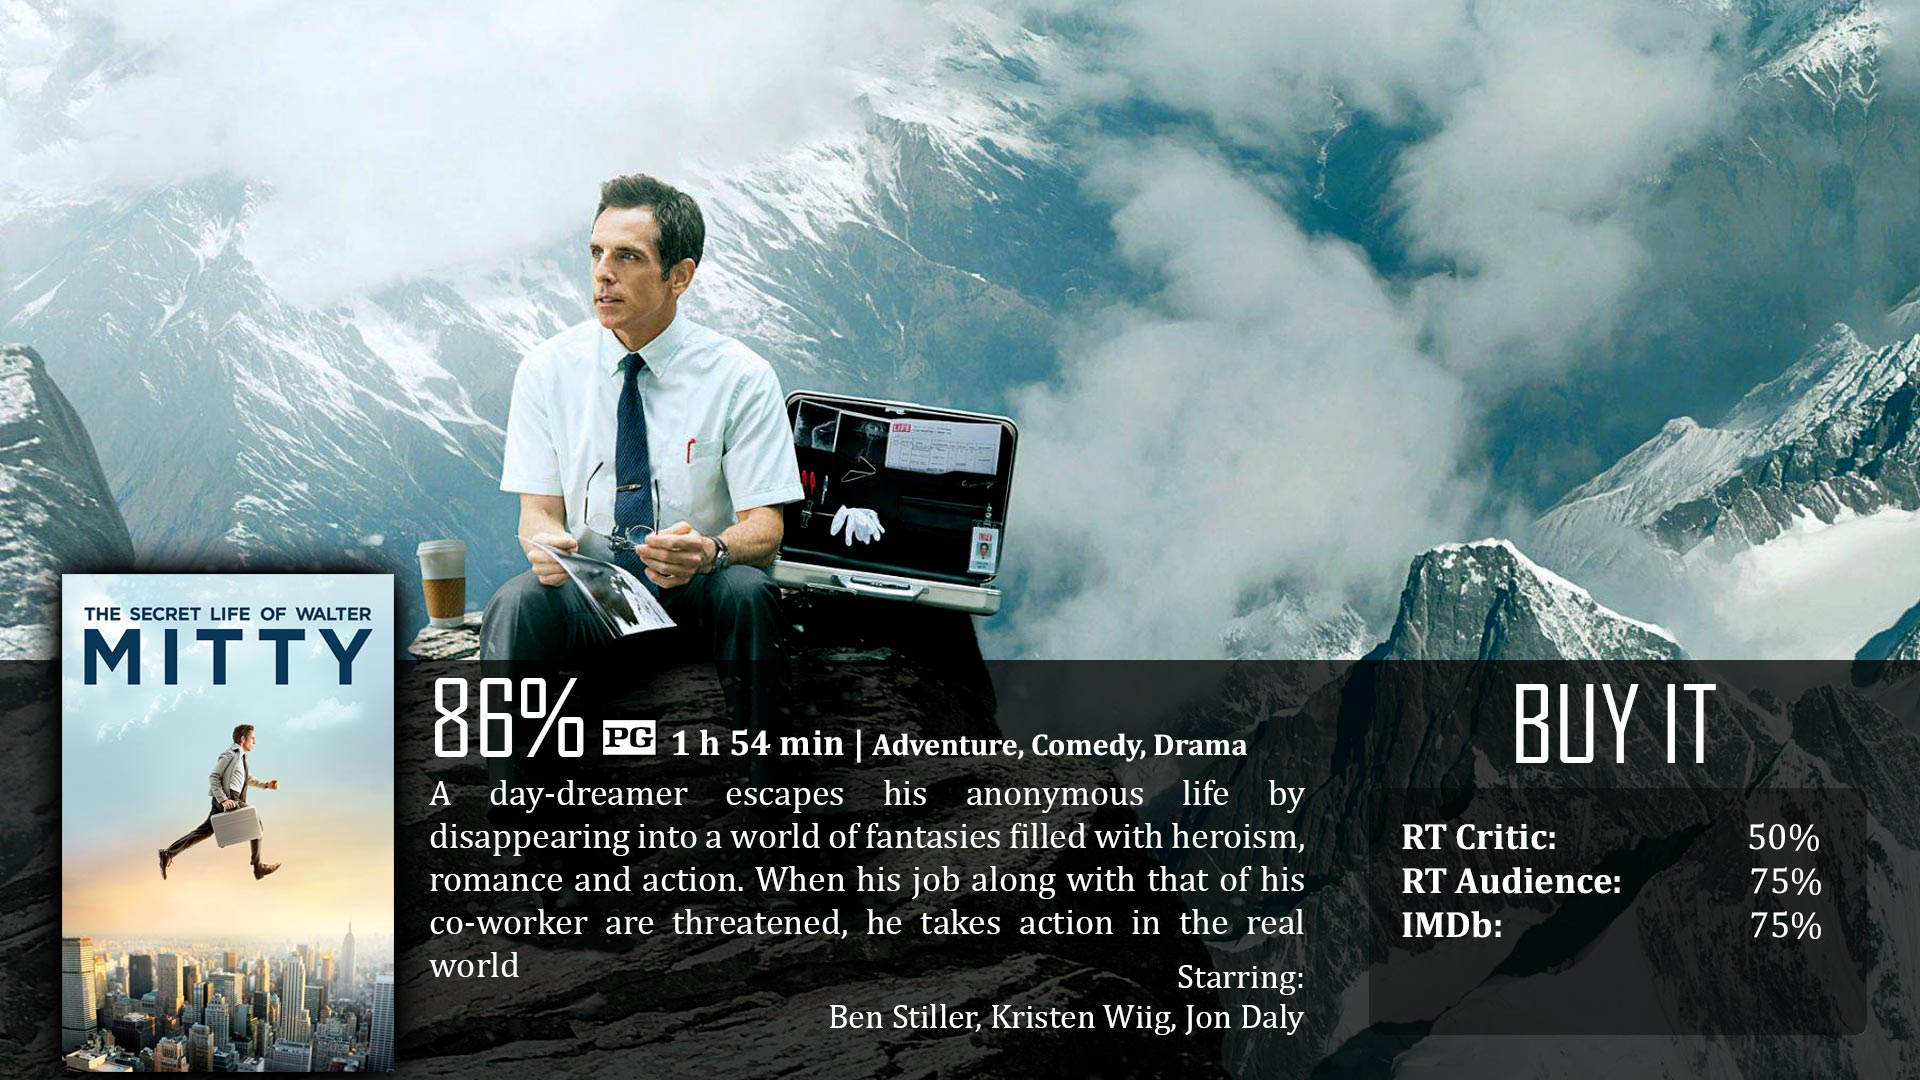 Secret Life Of Walter Mitty Quotes The Secret Life Of Walter Mitty 2013  Dave Examines Movies